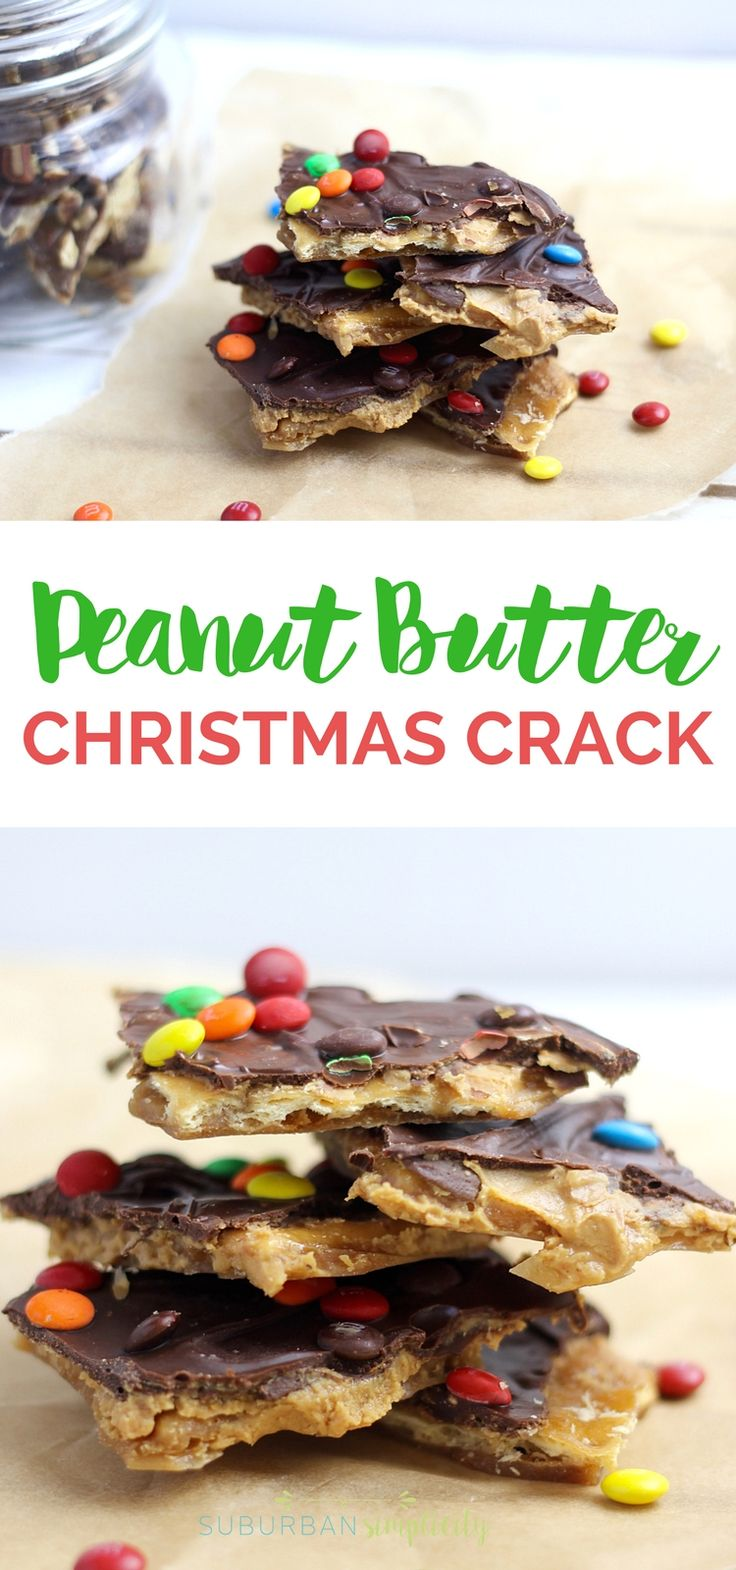 This Peanut Butter Christmas Crack is nothing short of AMAZING. Melt in your mouth good. It's a great homemade gift idea too! #Christmascrack